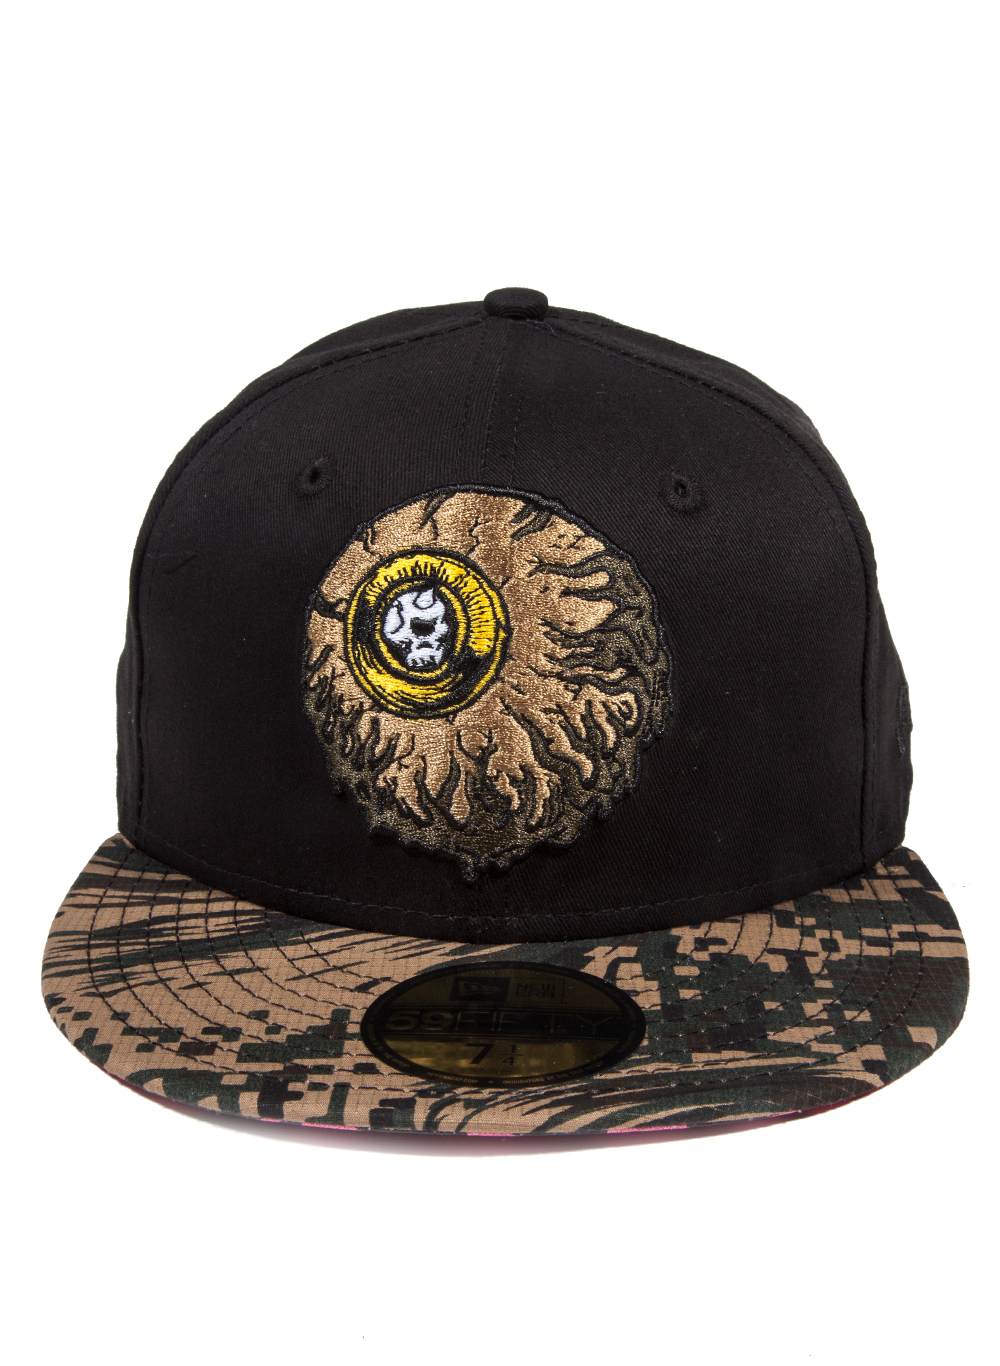 Lamour Keep Watch New Era 5950